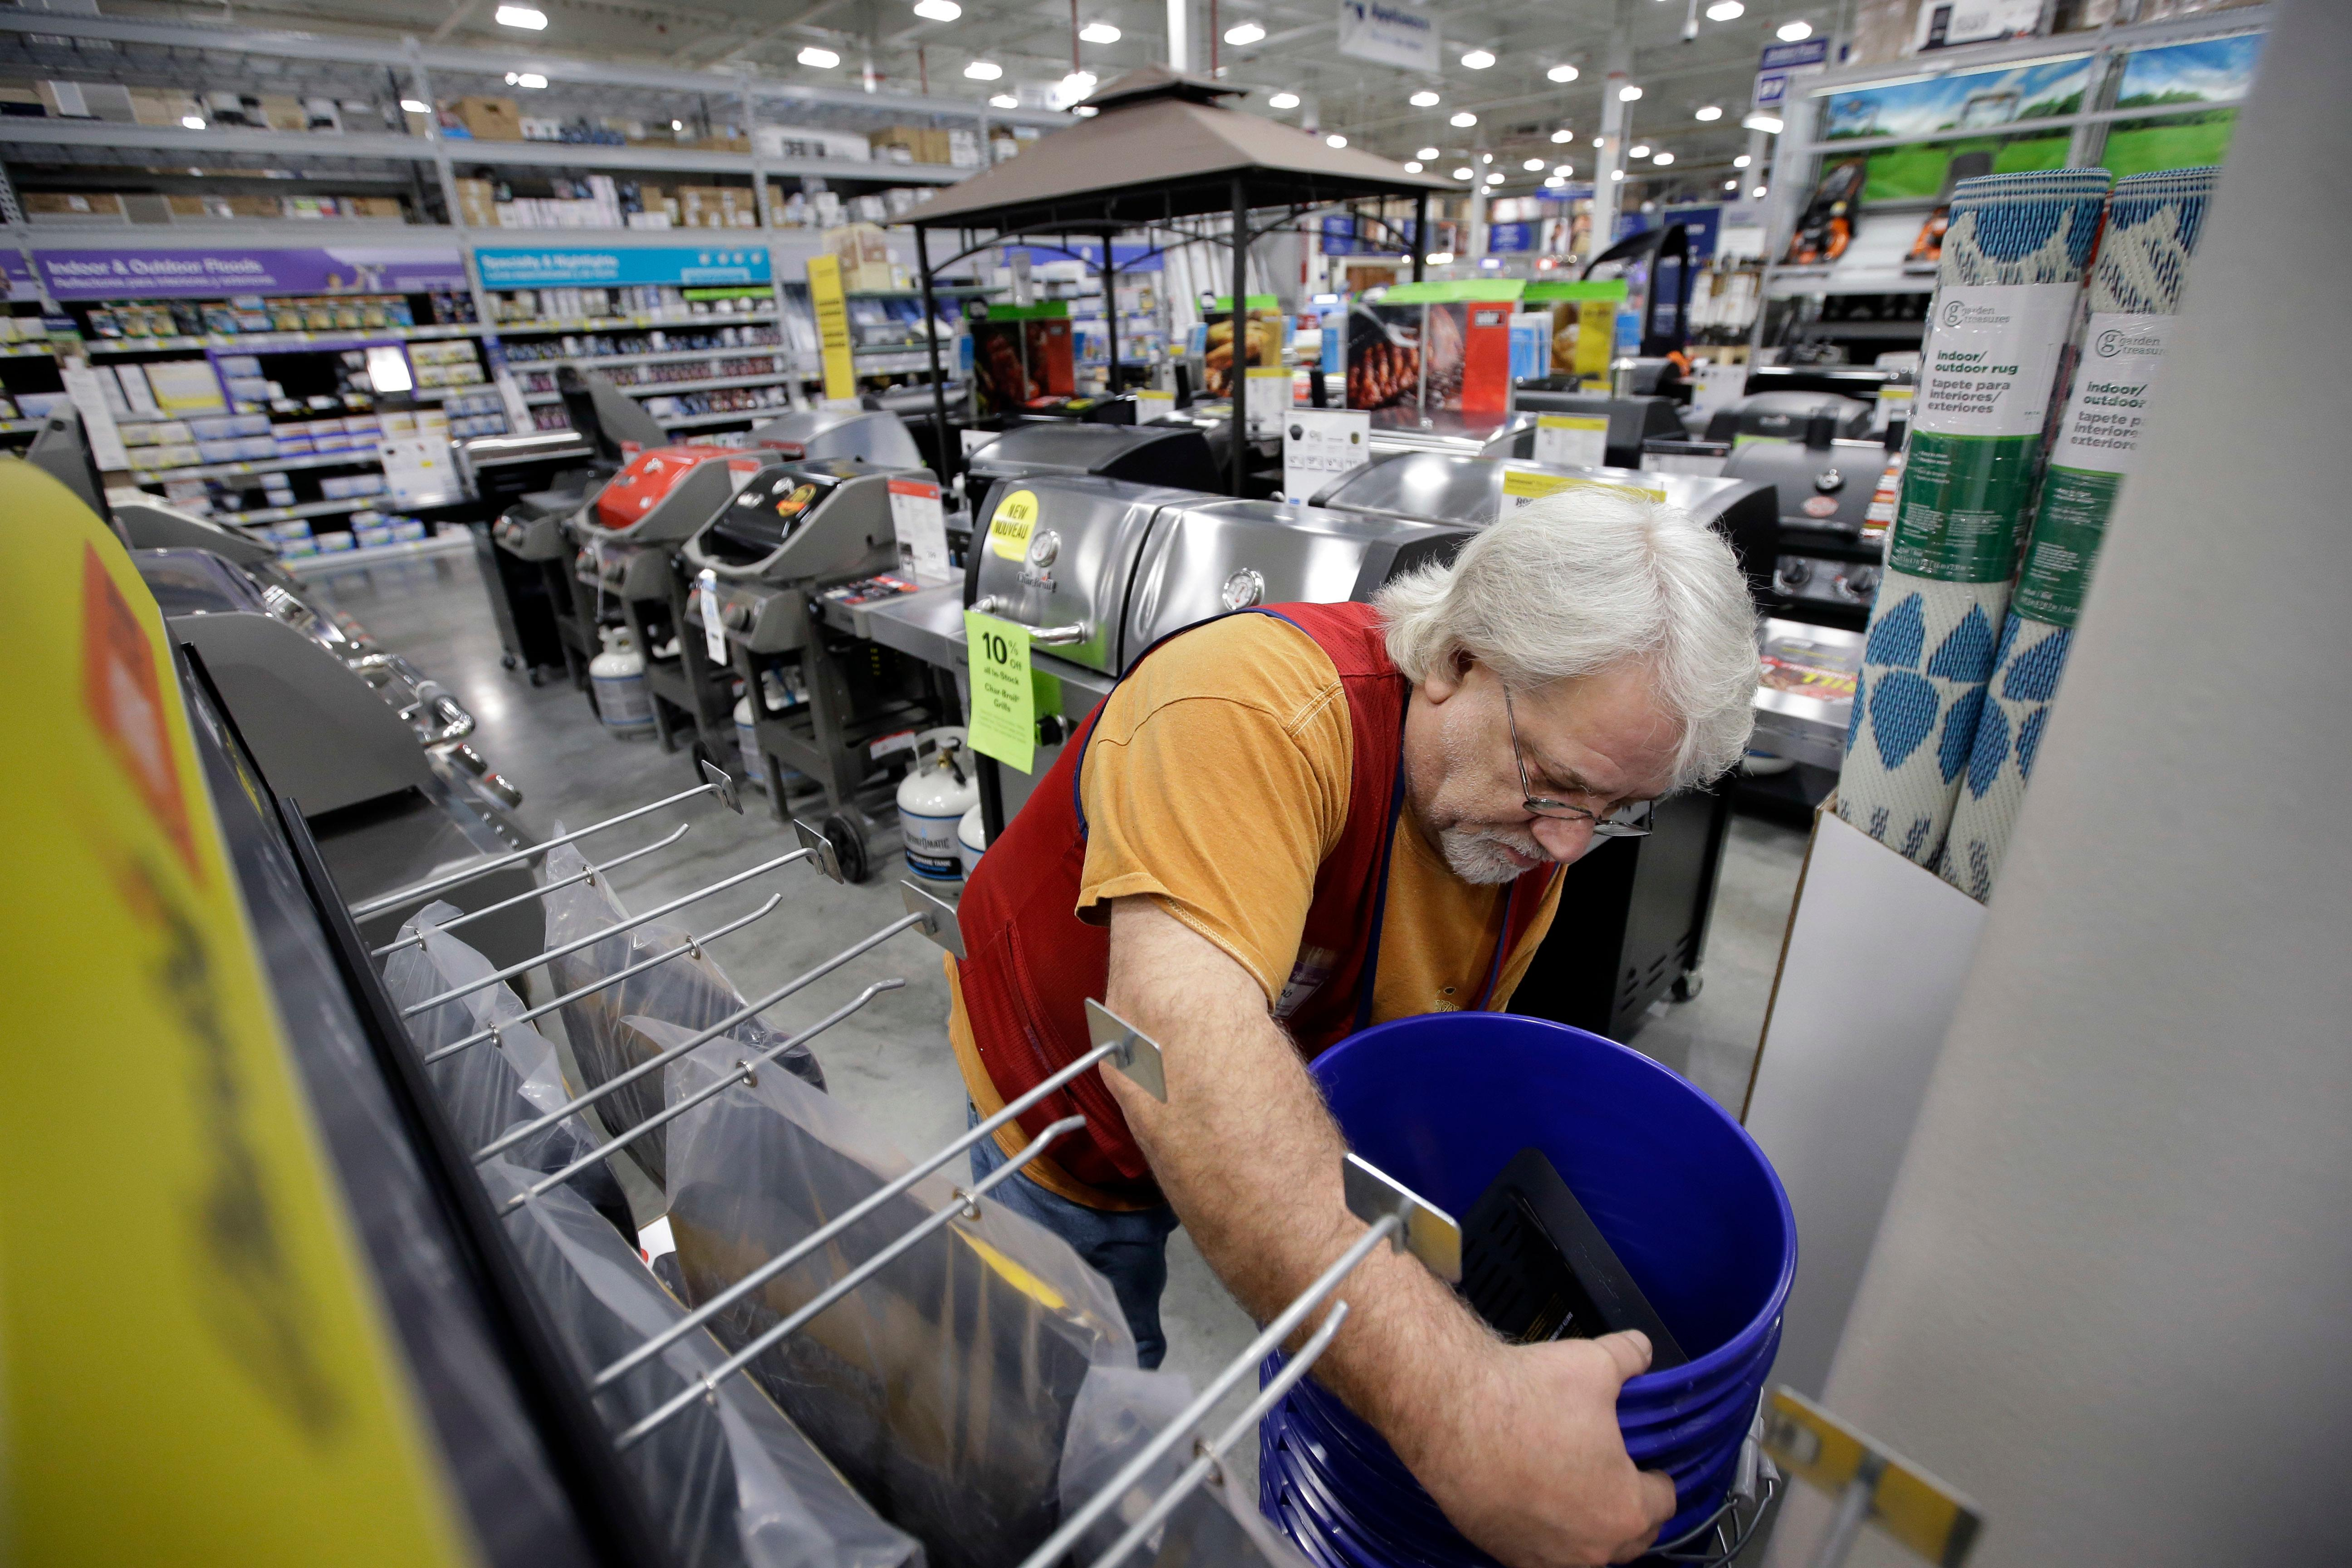 FILE- In this Feb. 23, 2018, file photo sales associate Bob Henriques, of Framingham, Mass., moves items at a Lowe's retail home improvement and appliance store, in Framingham. Lowe's Companies Inc. reports earnings on Wednesday, May 23. (AP Photo/Steven Senne, File)